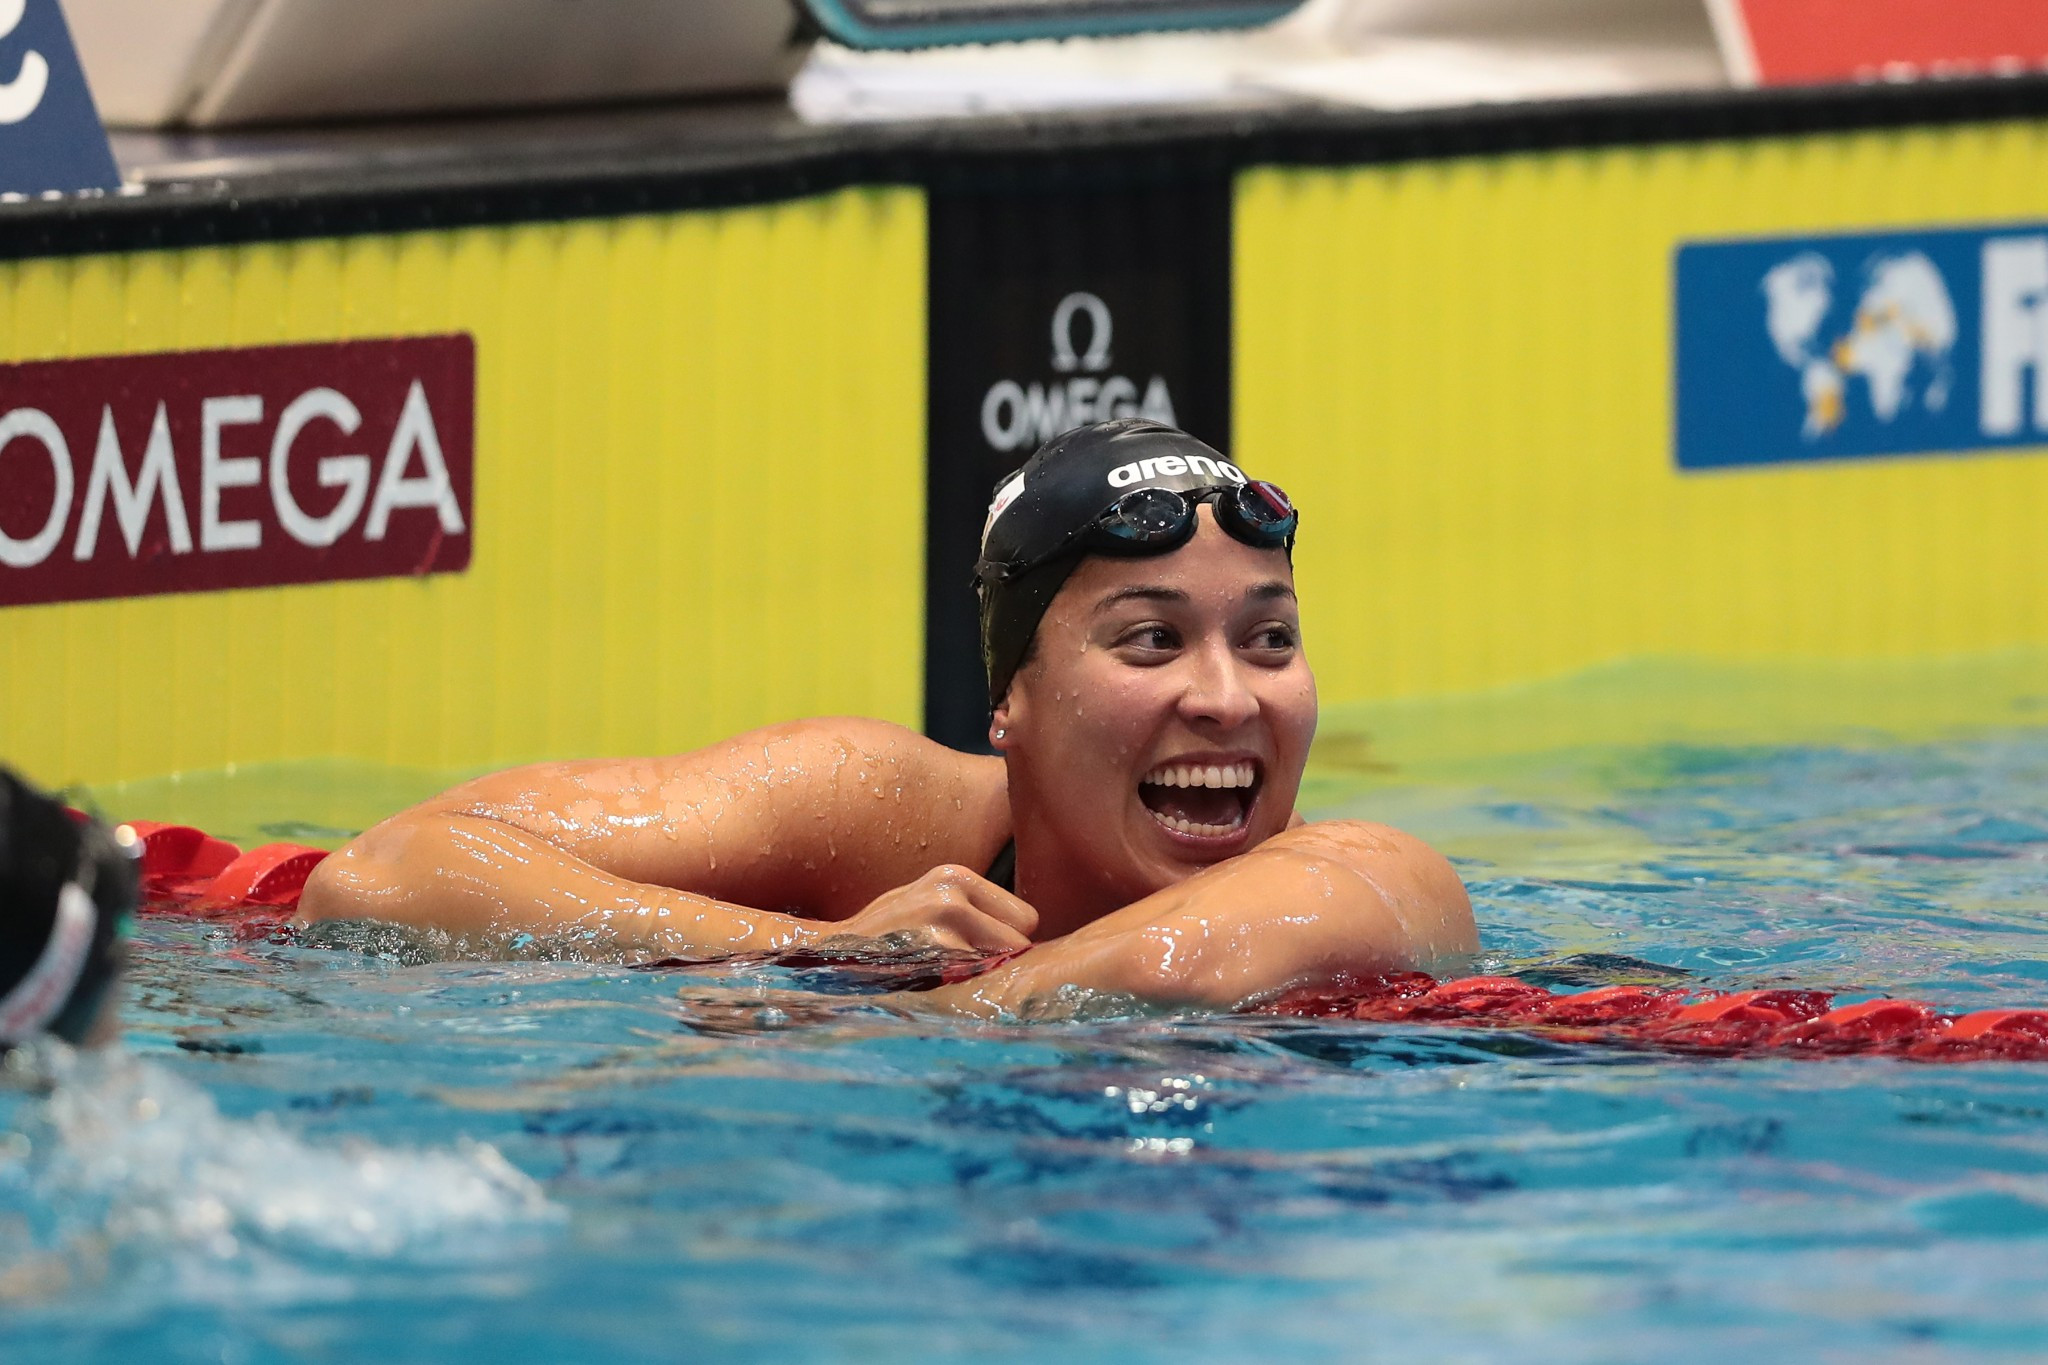 Kromowidjojo targets Tokyo 2020 Olympics on eve of FINA World Cup in Eindhoven